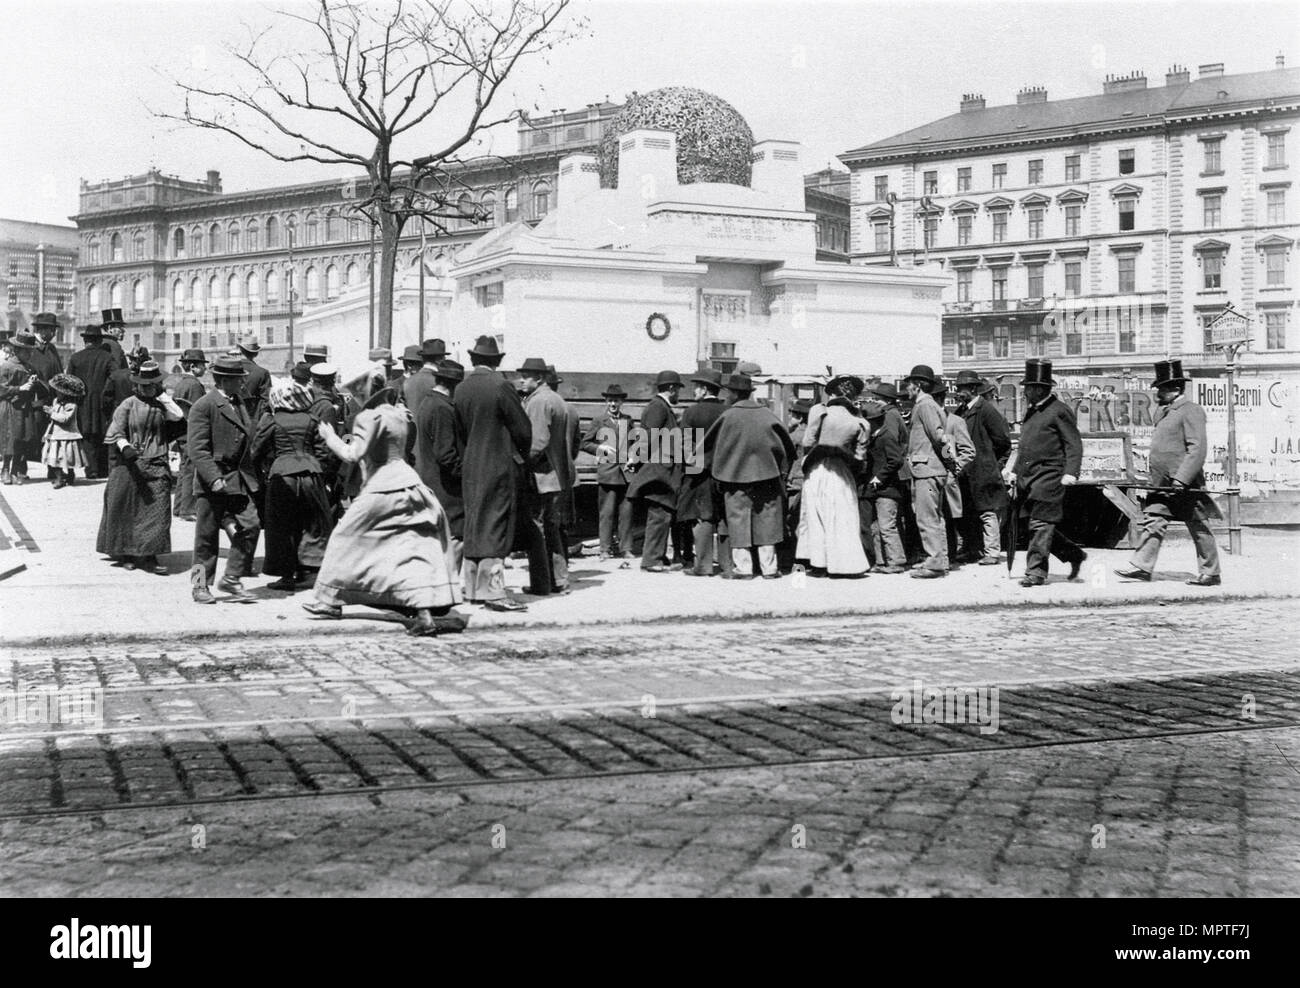 View of the Secession Exhibition Building from Gemüsemarkt, 1899. - Stock Image